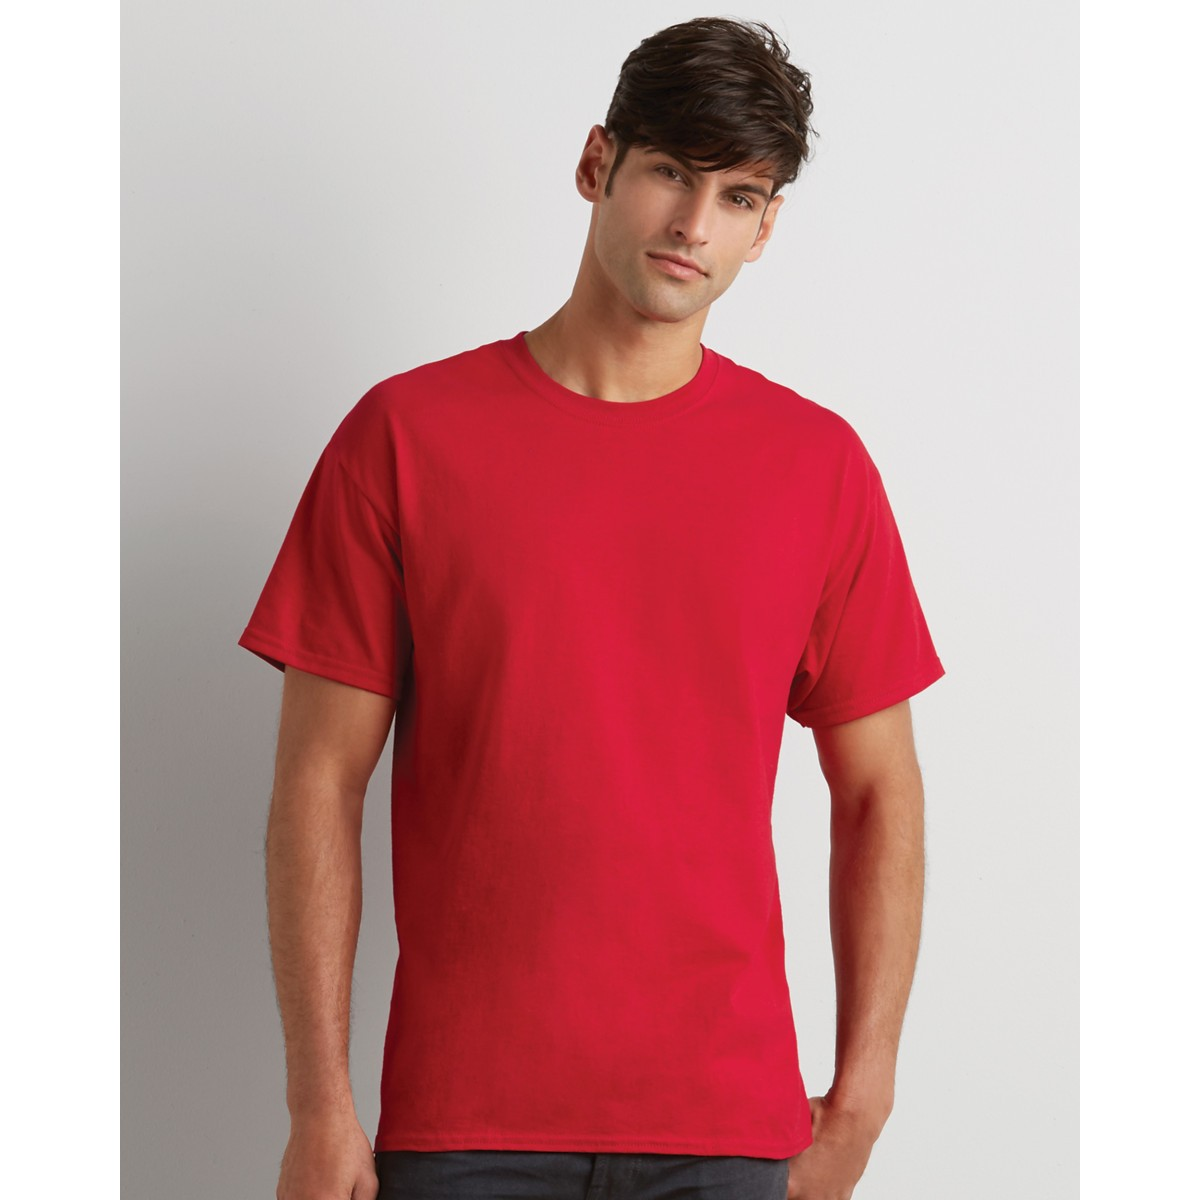 db33379d Gildan Ultra Cotton Adult T-shirts for Promotional Clothing